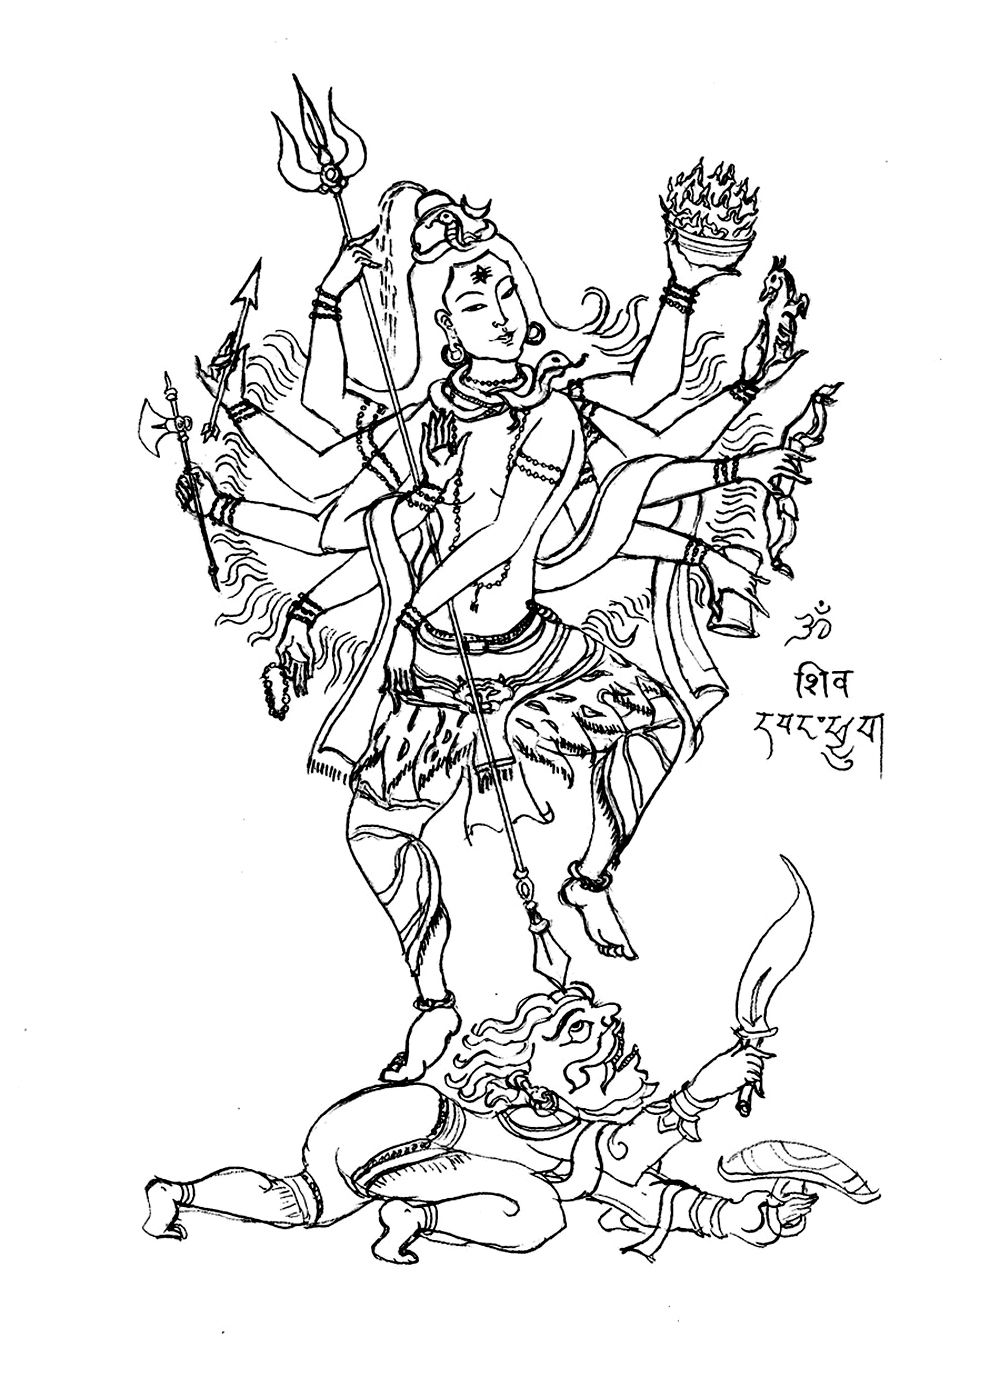 Shiva 8 Bras India Bollywood Coloring Pages For Adults Just